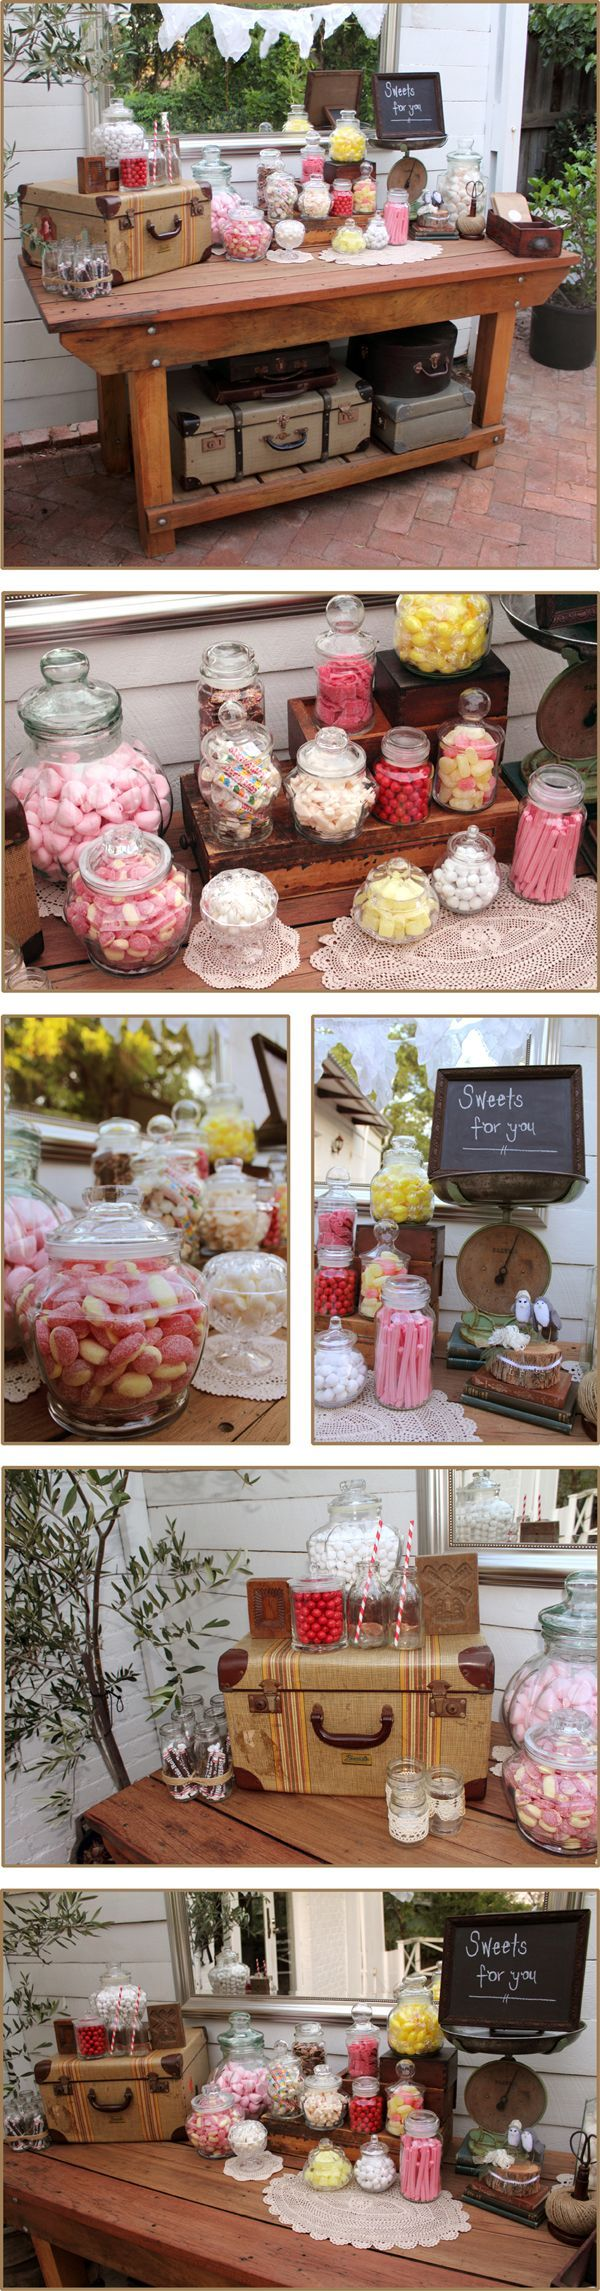 Sweet amp sparkly wedding candy buffet pictures to pin on pinterest - This Is The Perfect Inspiration For A Homemade Candy Buffet We Are Loving All Of